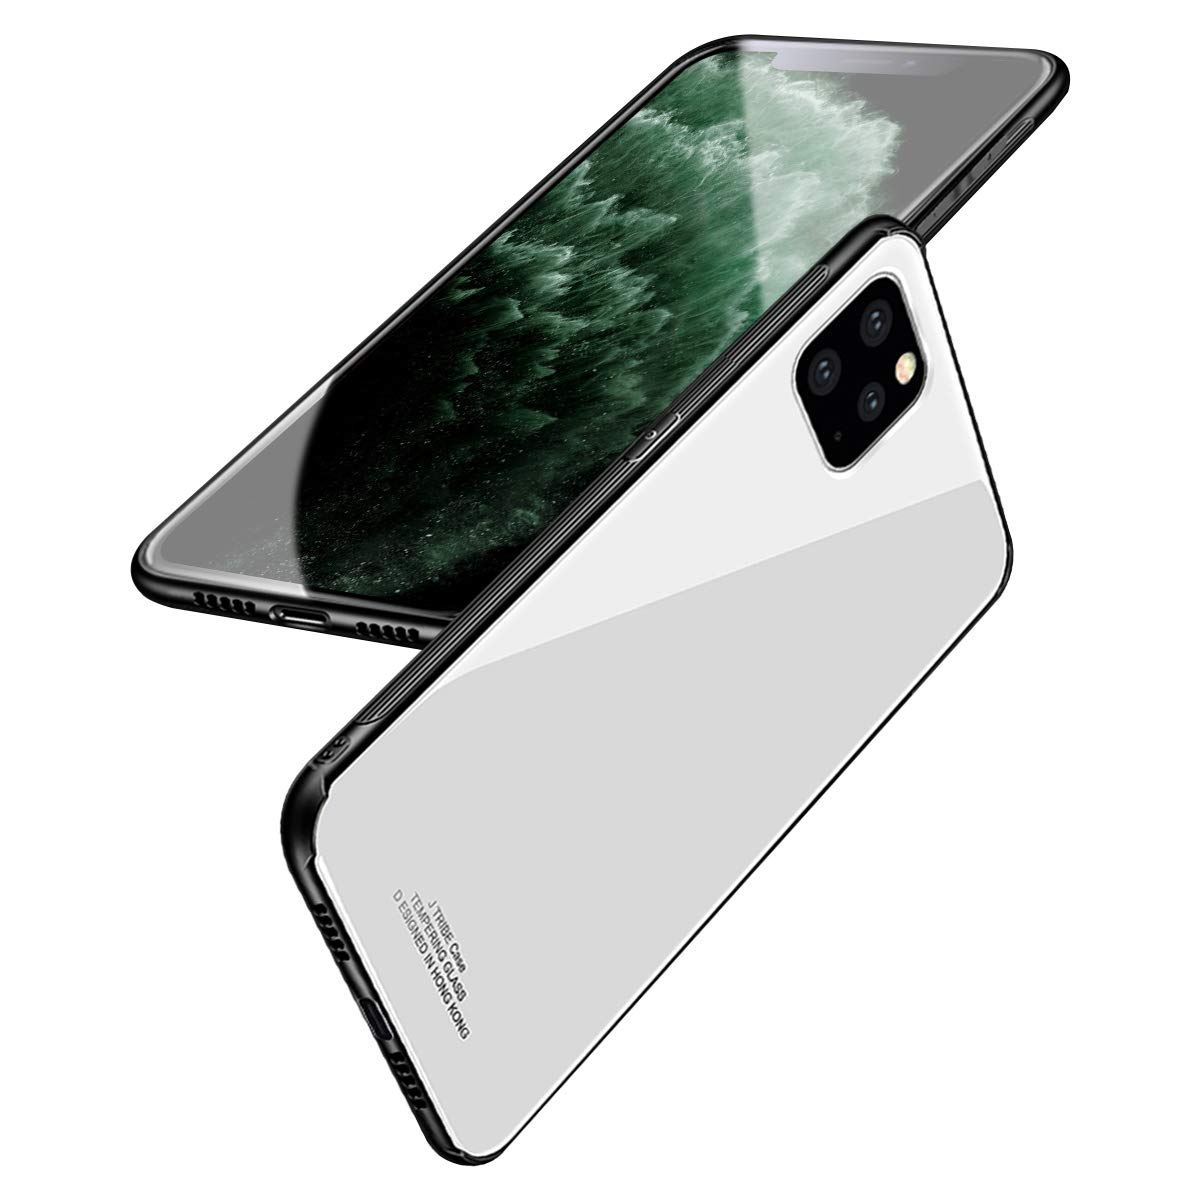 BeautyWill Case for iPhone 11 Pro Max Tempered Glass Case Scratch-Resistant Pure Color Soft TPU Bumper Shockproof Cover with Lanyard Hole White